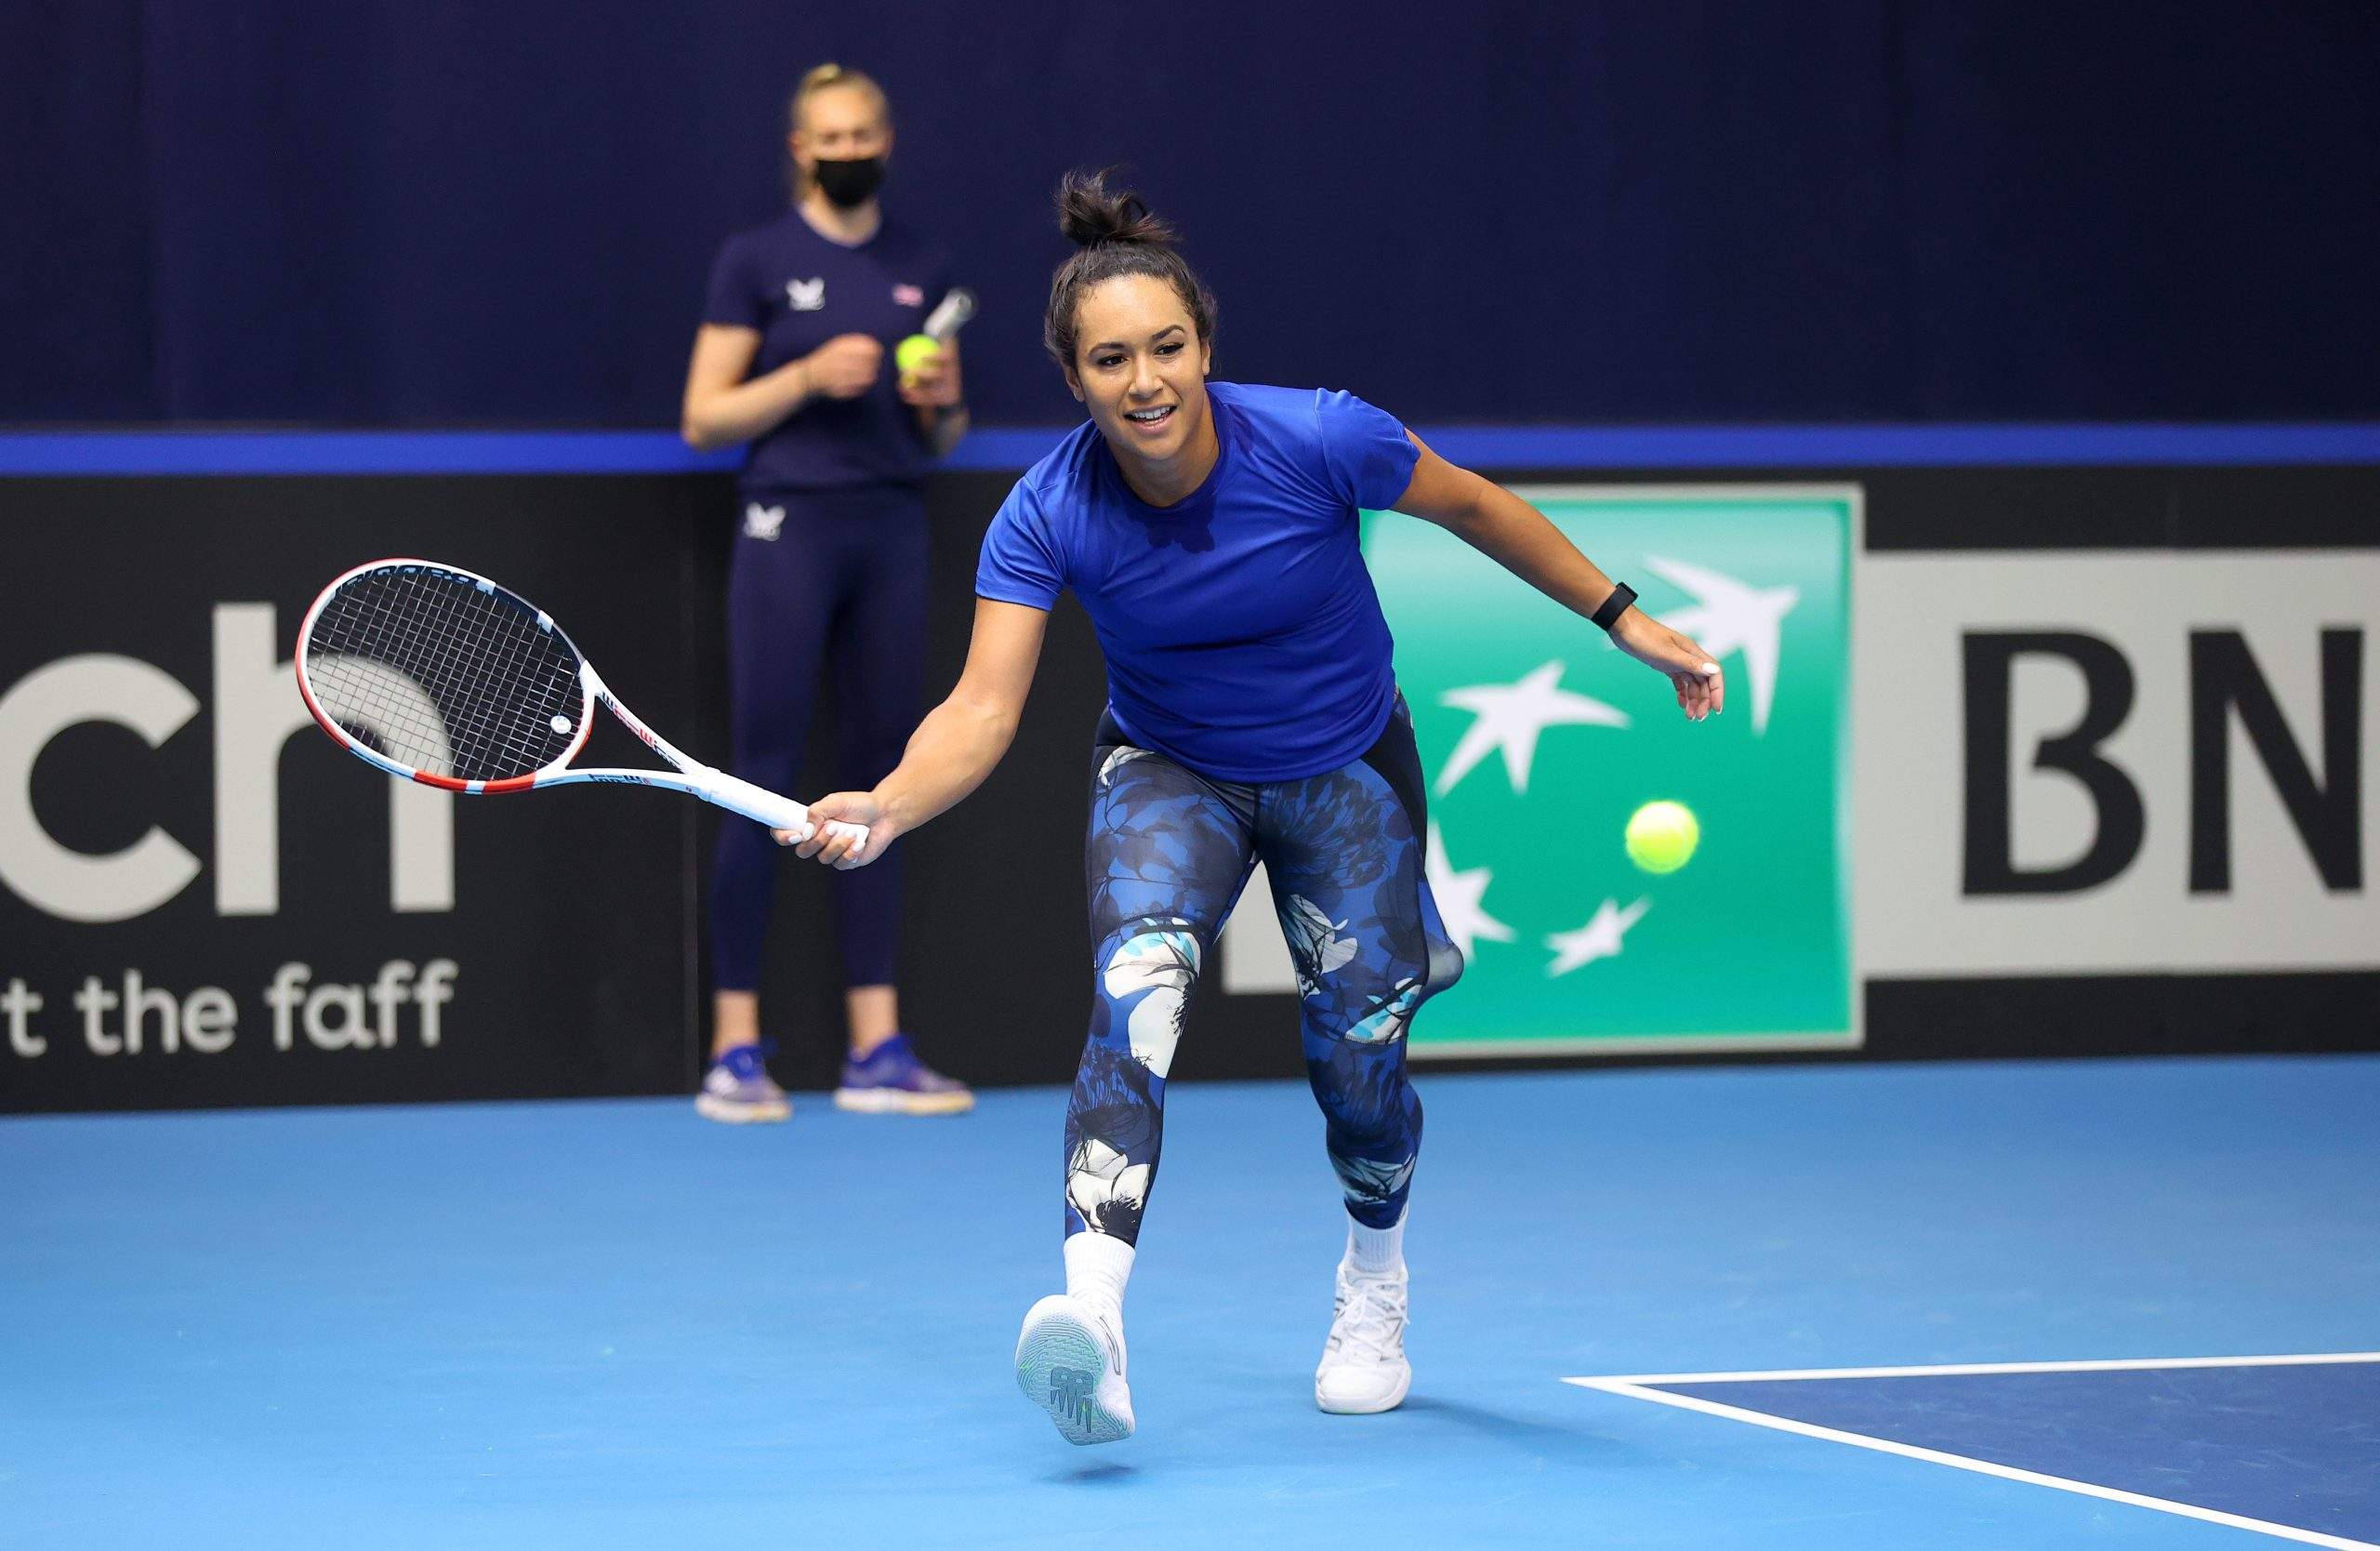 LONDON, ENGLAND - APRIL 13: Heather Watson of Great Britain plays a forehand shot during a preview day of the Billie Jean King Cup Play-Offs between Great Britain and Mexico at National Tennis Centre on April 13, 2021 in London, England. (Photo by Julian Finney/Getty Images for LTA)